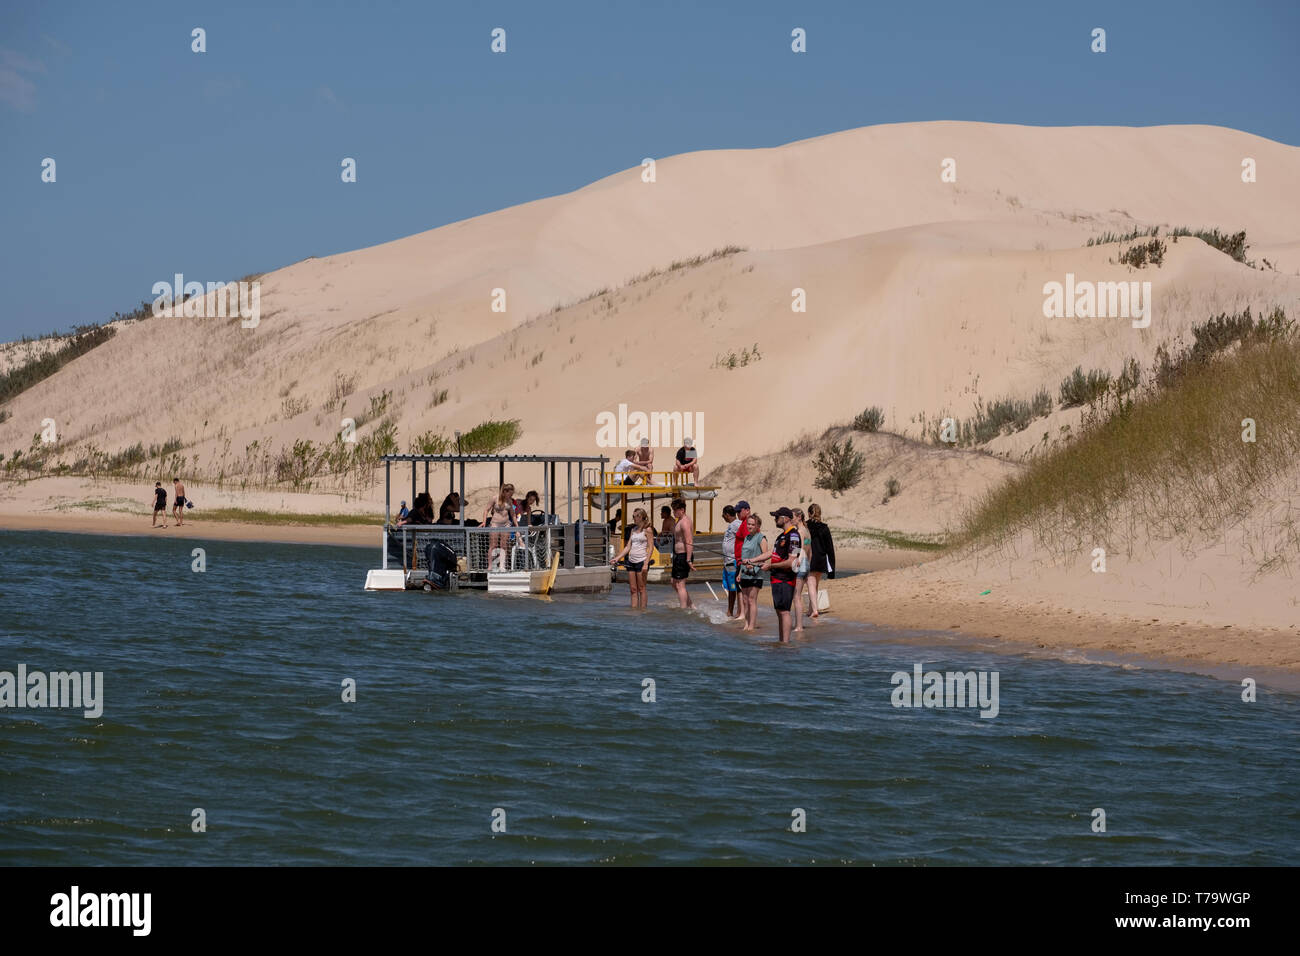 Sundays River ferry moored at The Alexandria coastal dune fields near Addo / Colchester. The dunes were photographed from the Sundays River. - Stock Image